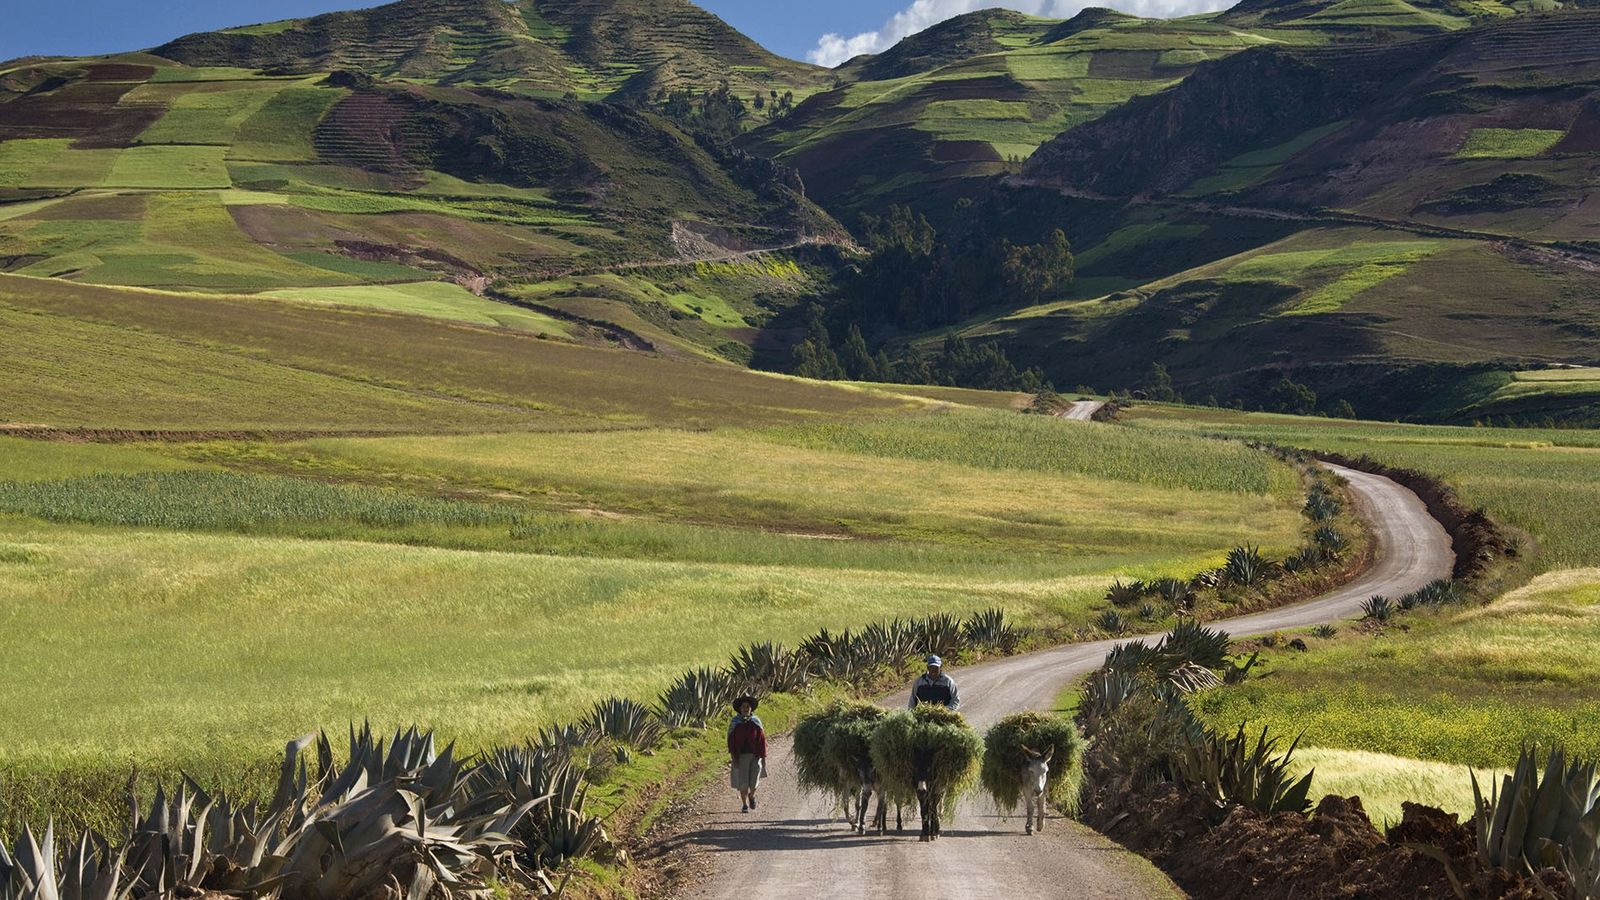 Farming in the Andes near Urubamba.